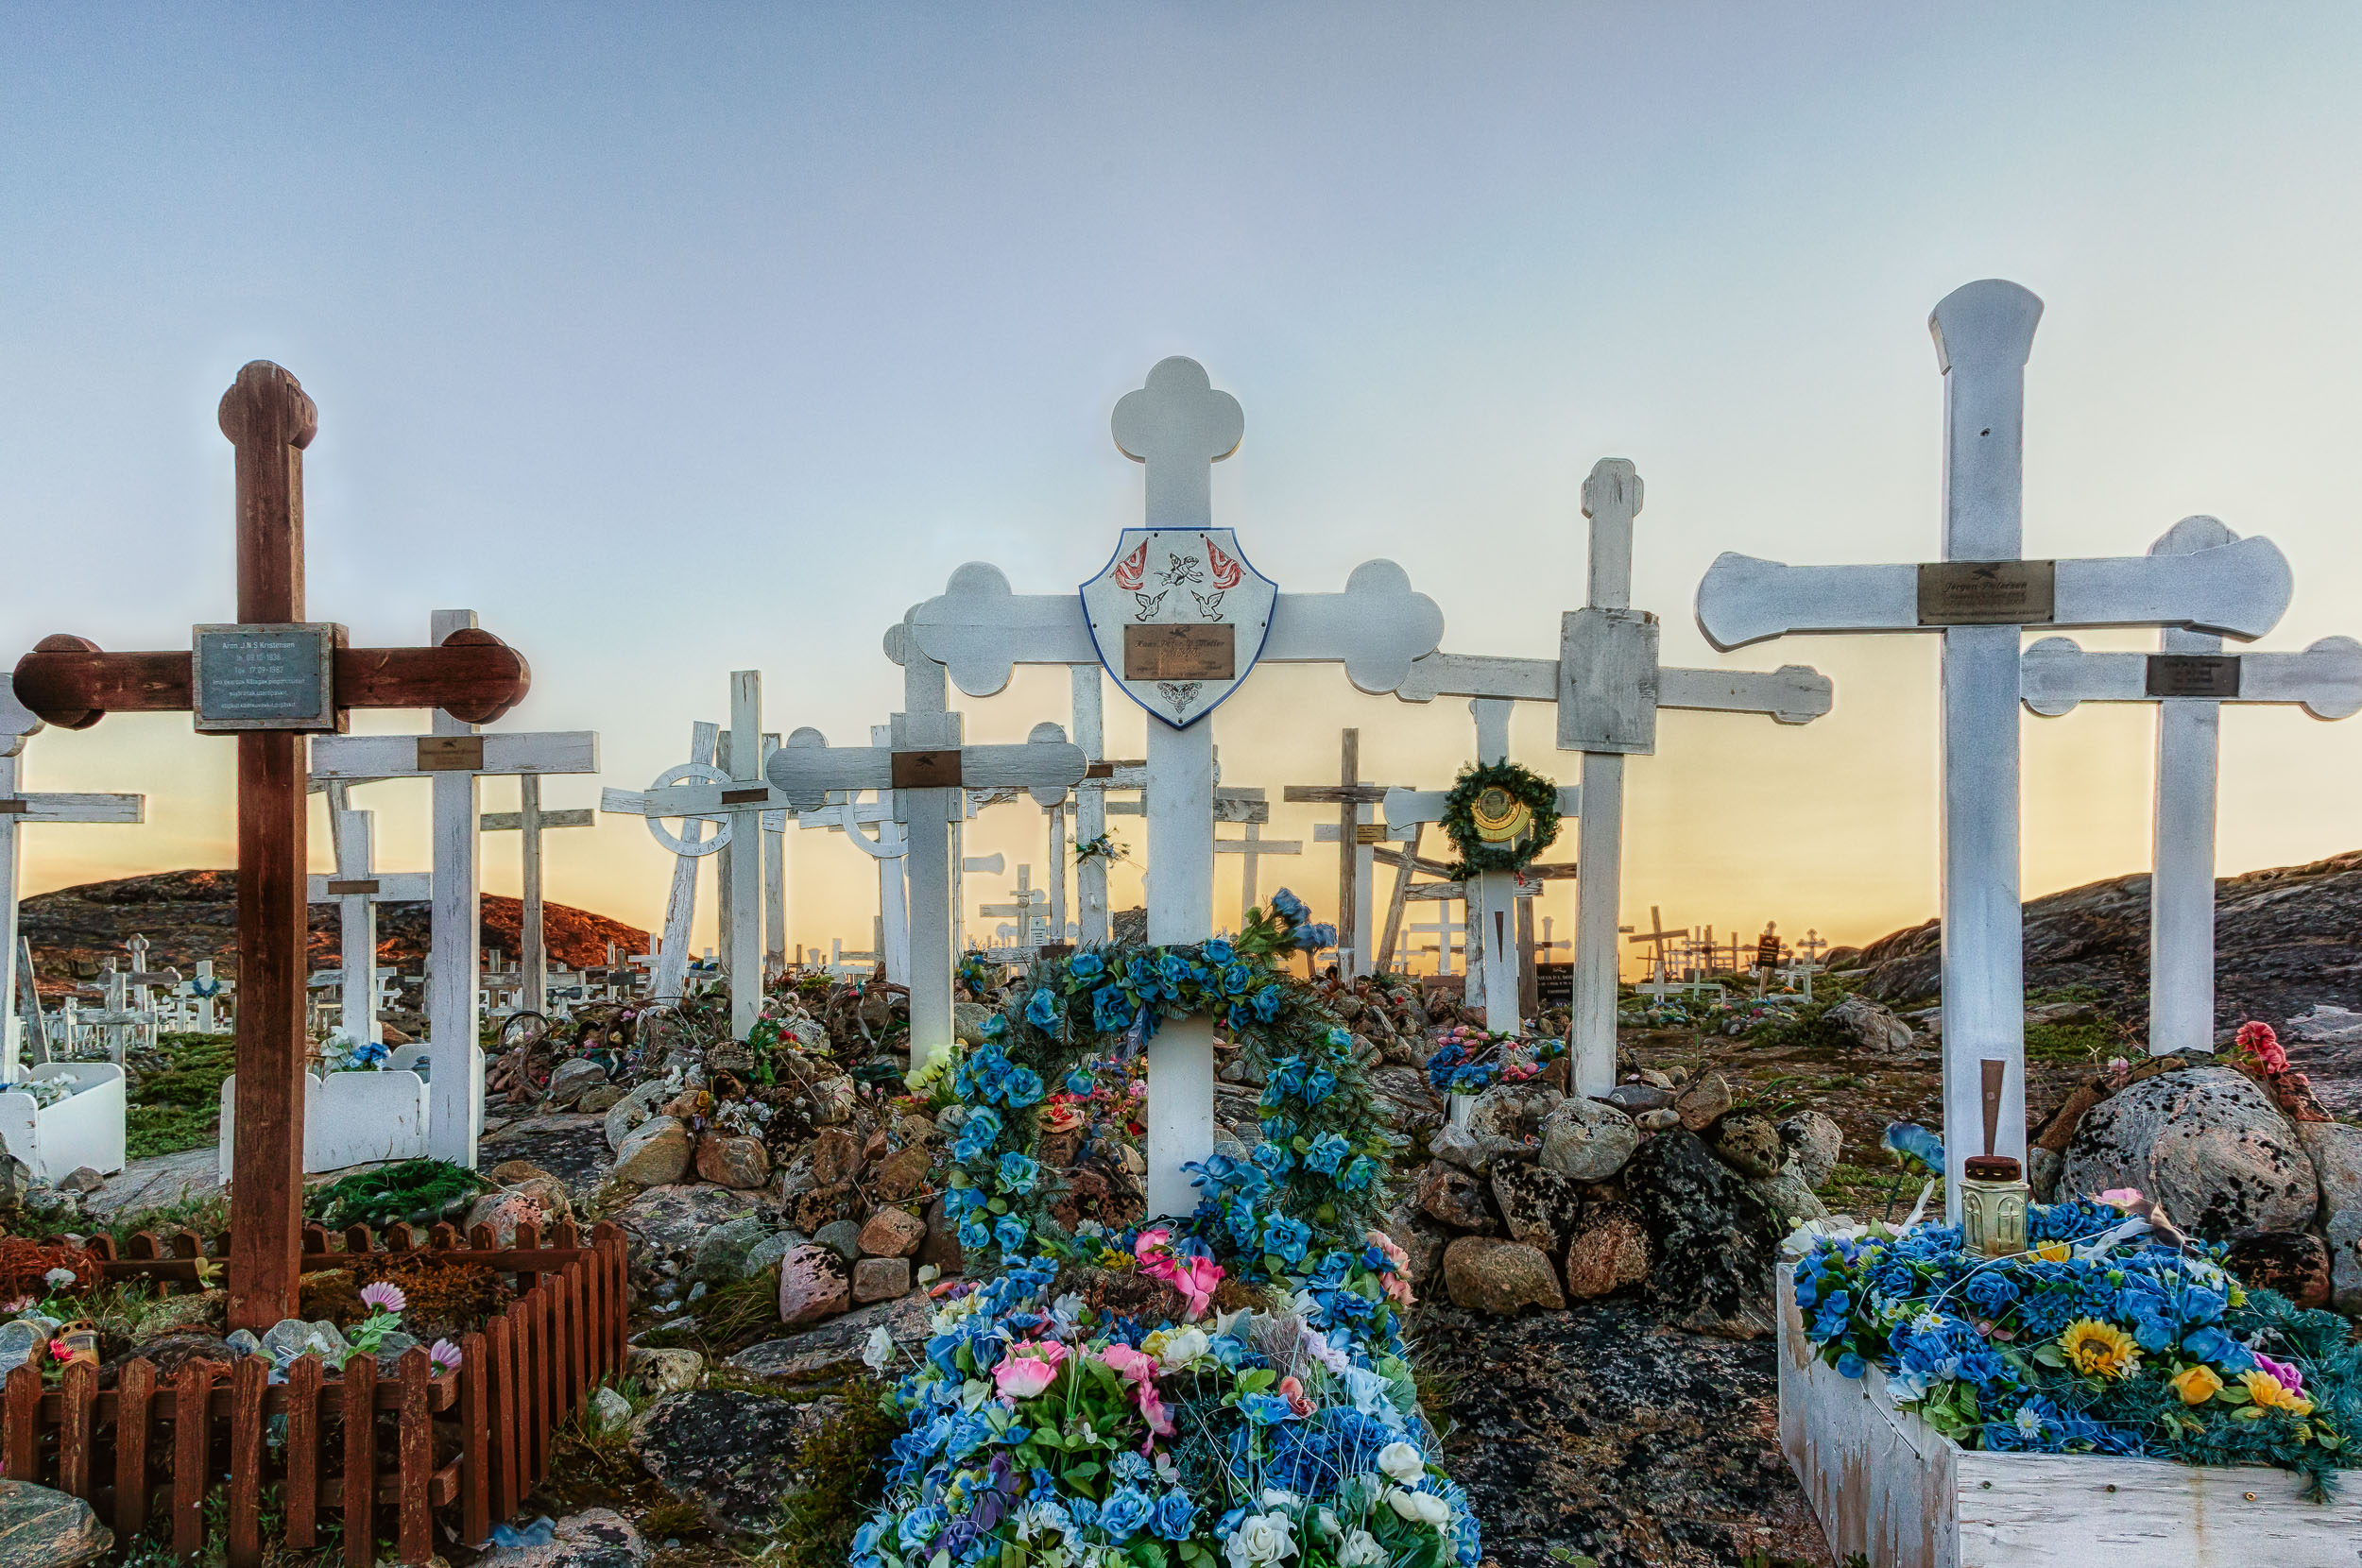 Graves, adorned with flowers   , under the    midnight sun    in    Ilulissat, Greenland   .